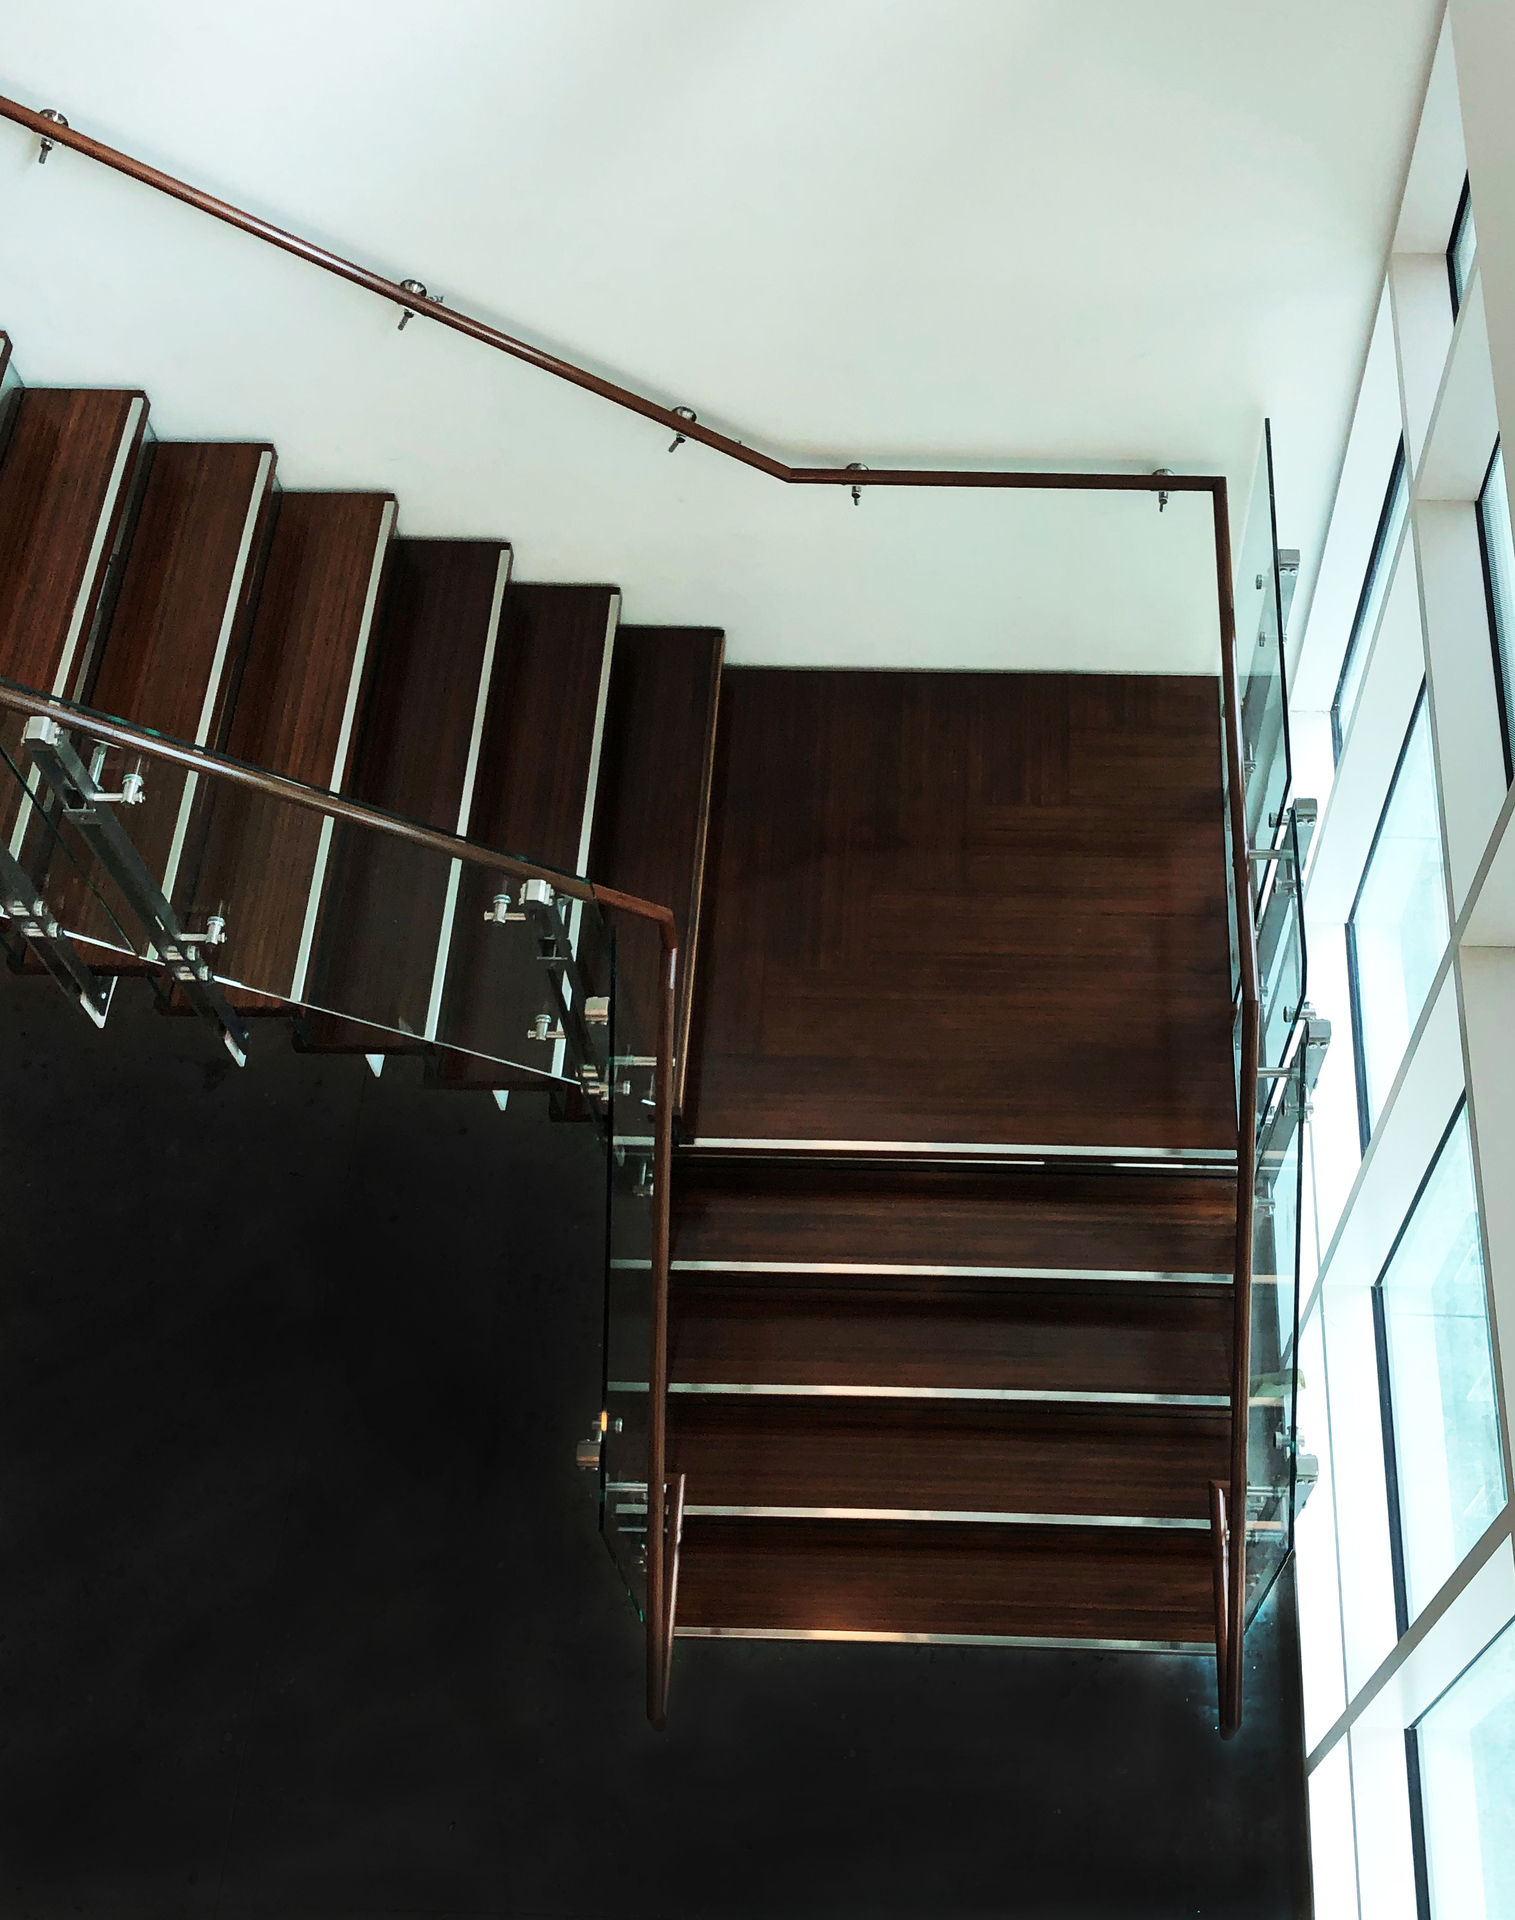 Featured indoor at the Vancouver Waterfront are Lamboo® Surface™ - Stair & Handrails.